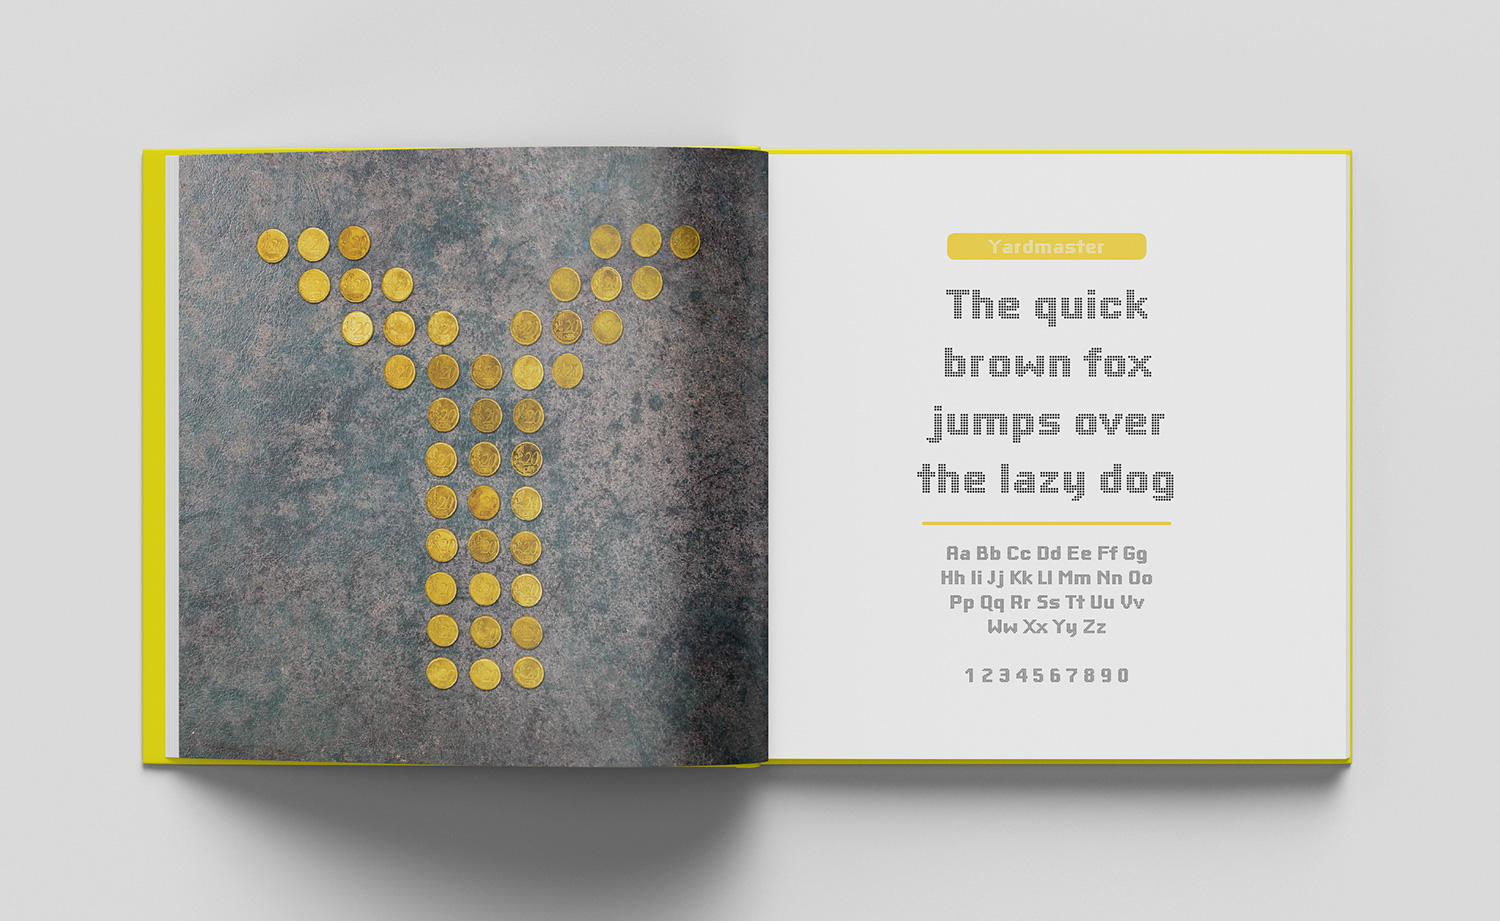 ABC of typography book spread letter Y made with euro coins